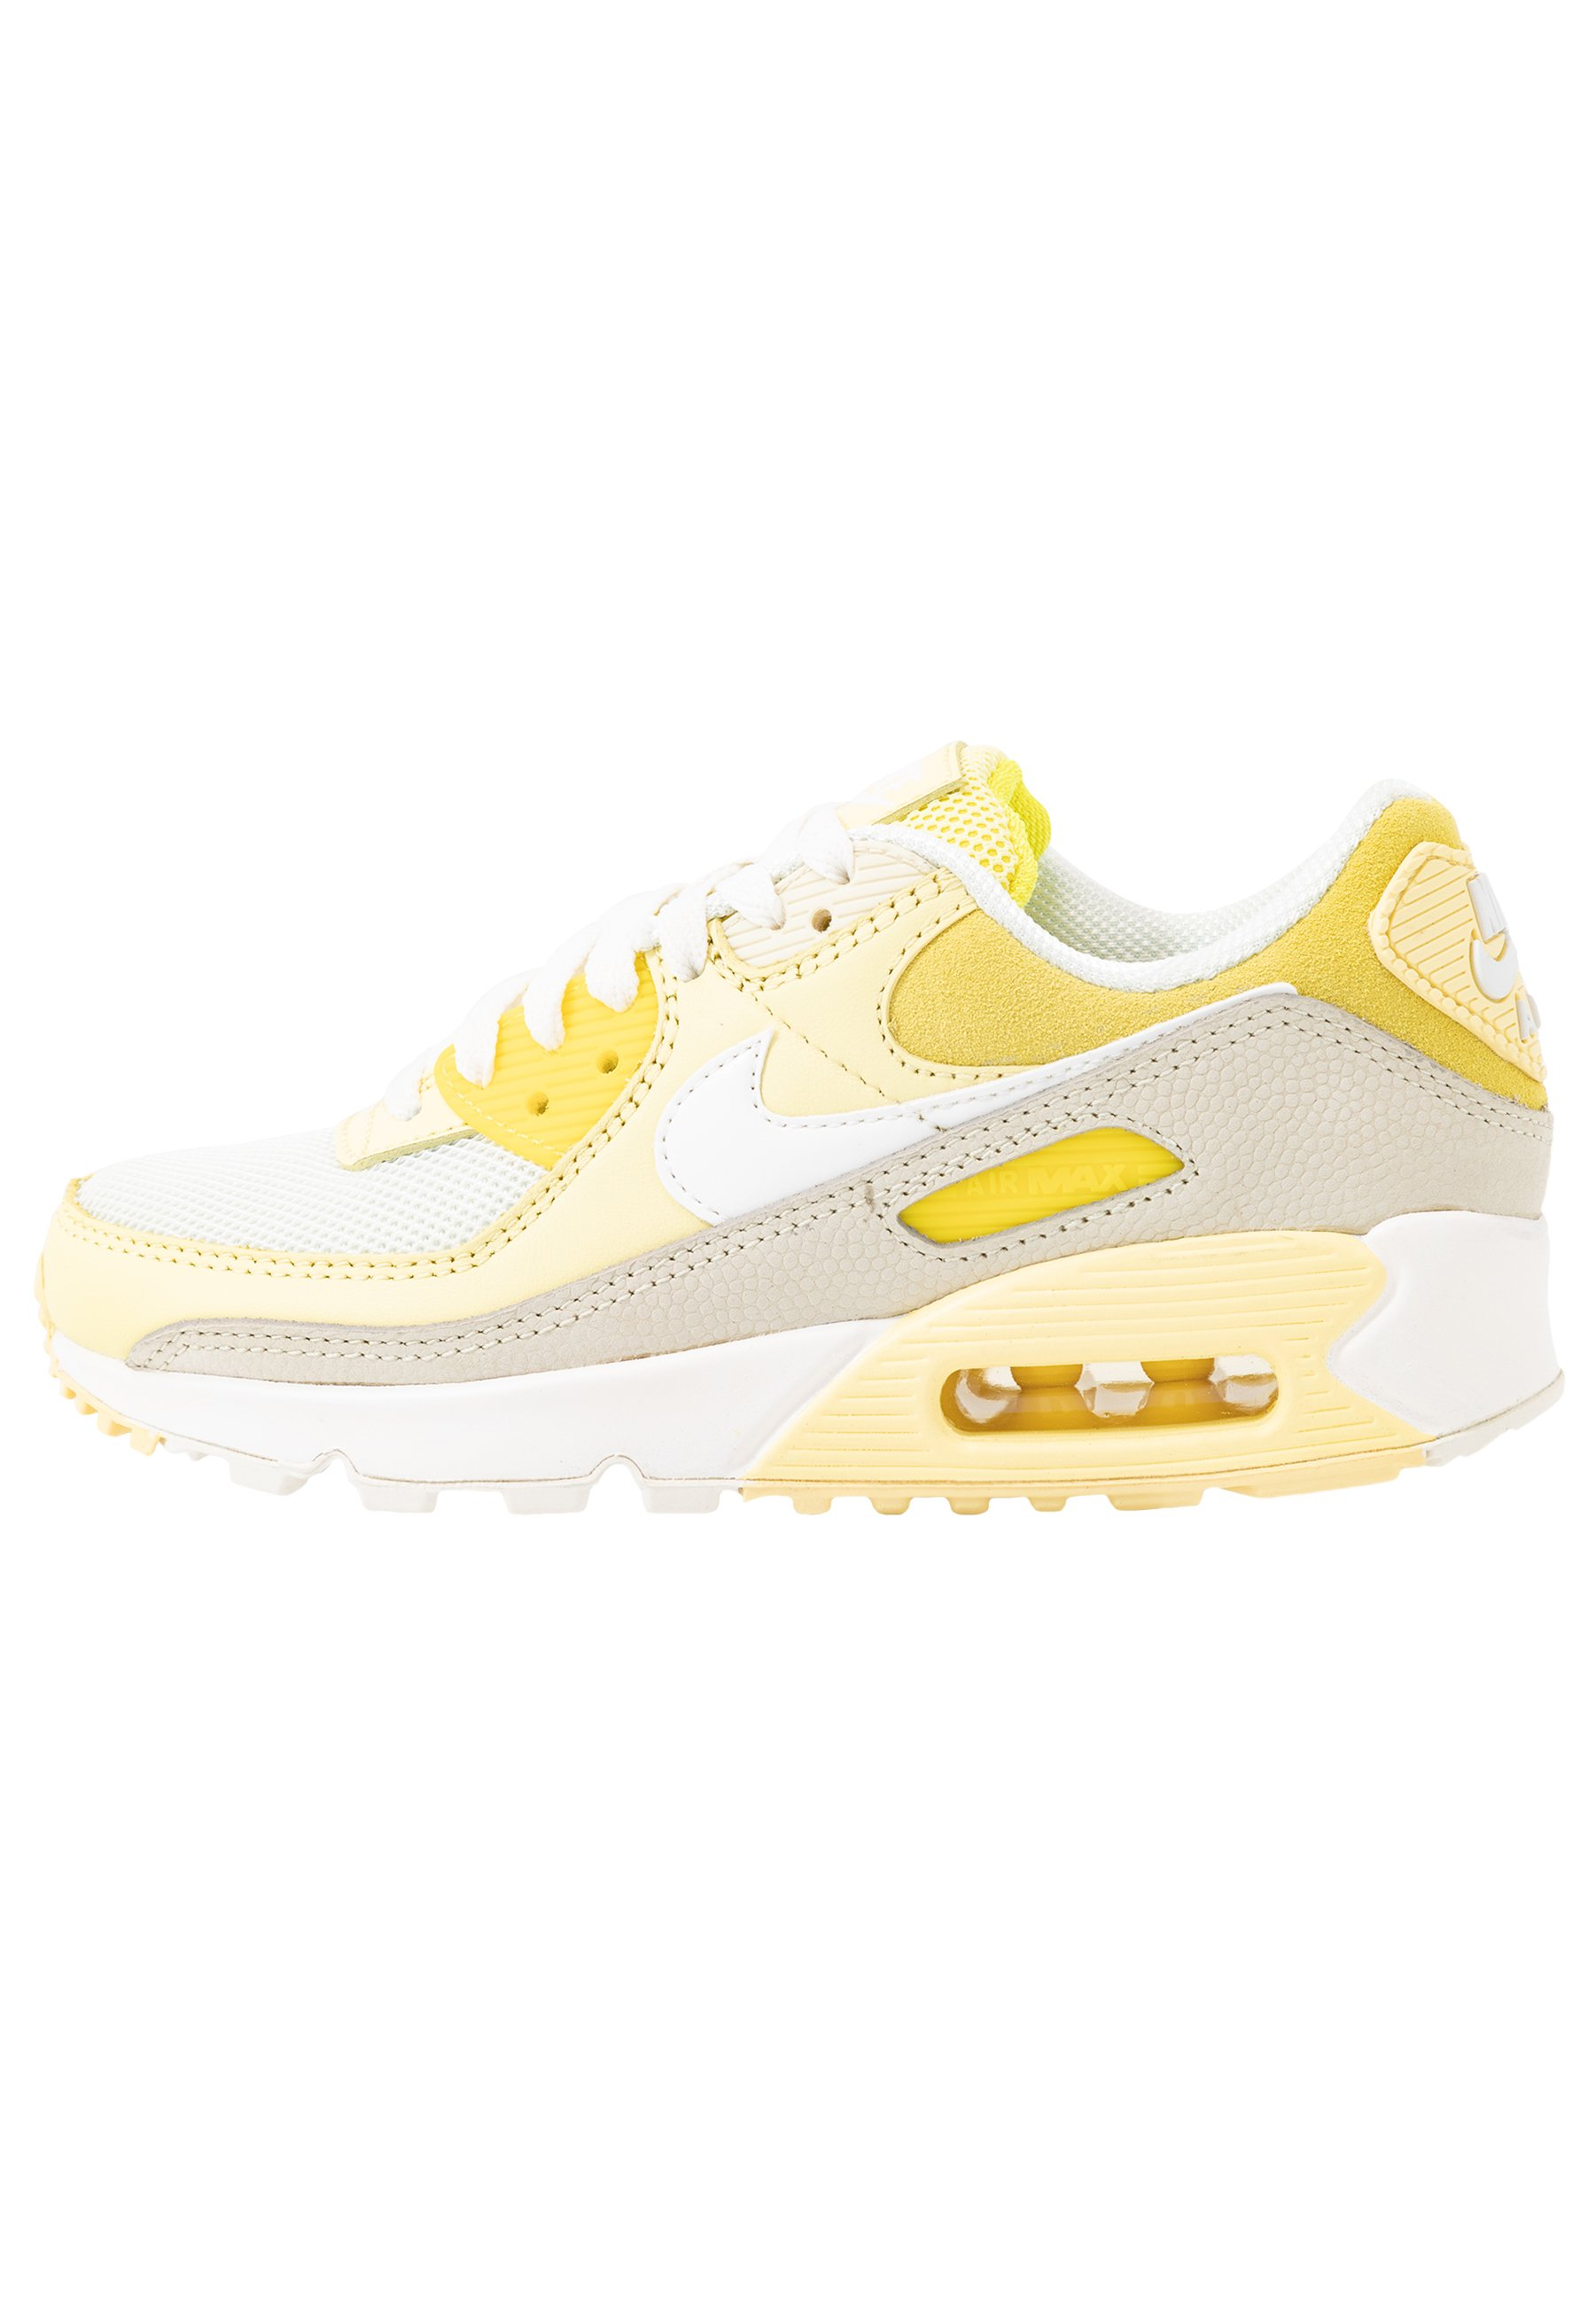 AIR MAX 90 Sneaker low optic yellowwhitefossilbicycle yellowsail